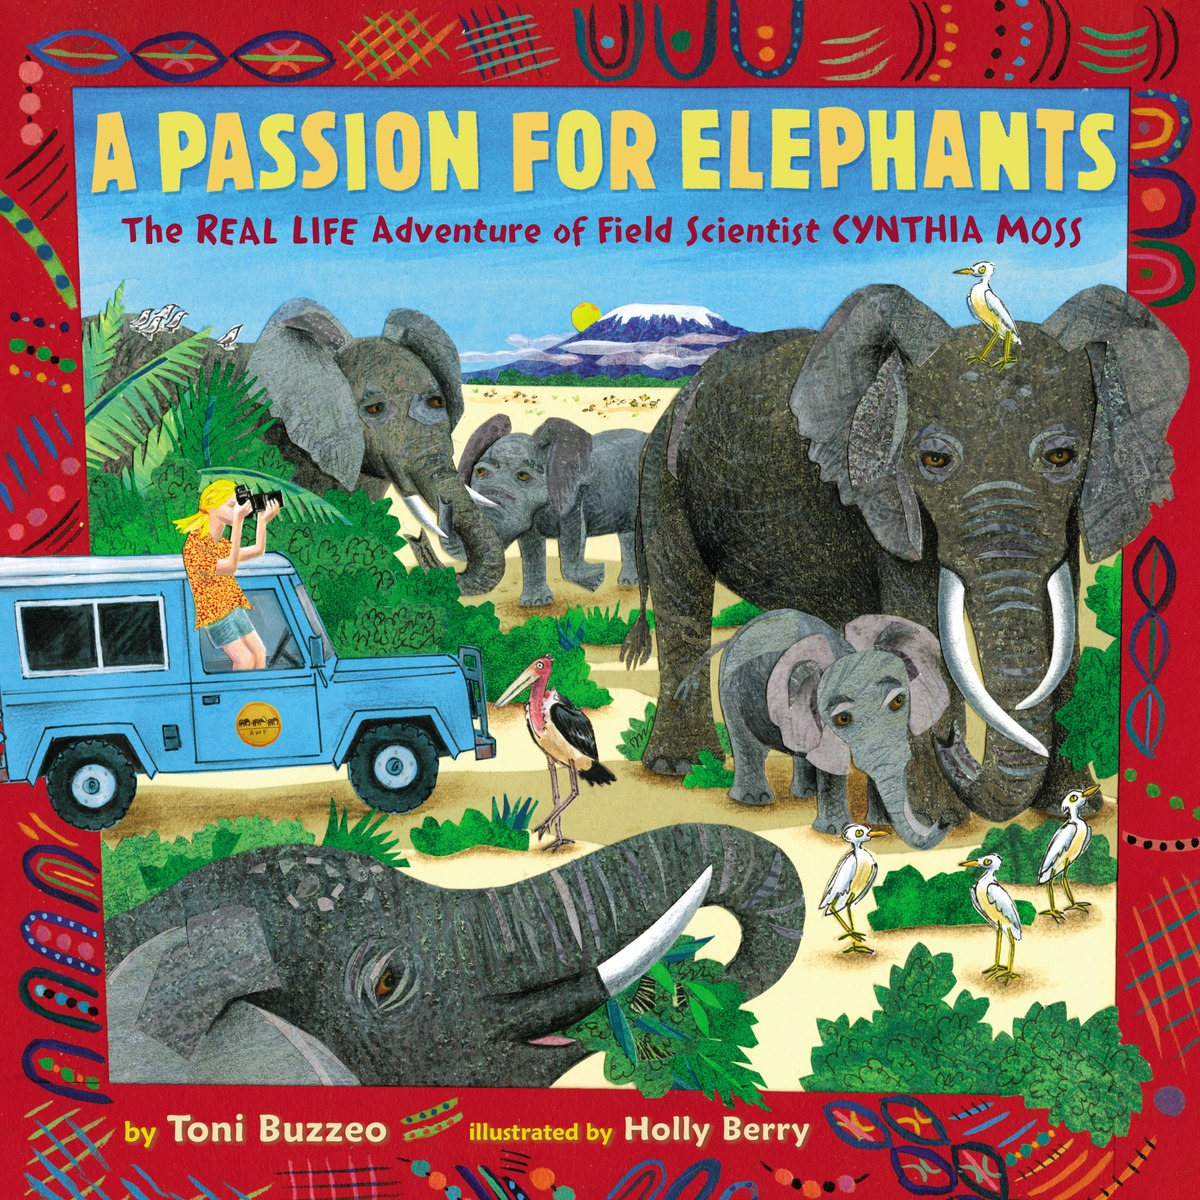 PASSION FOR ELEPHANTS